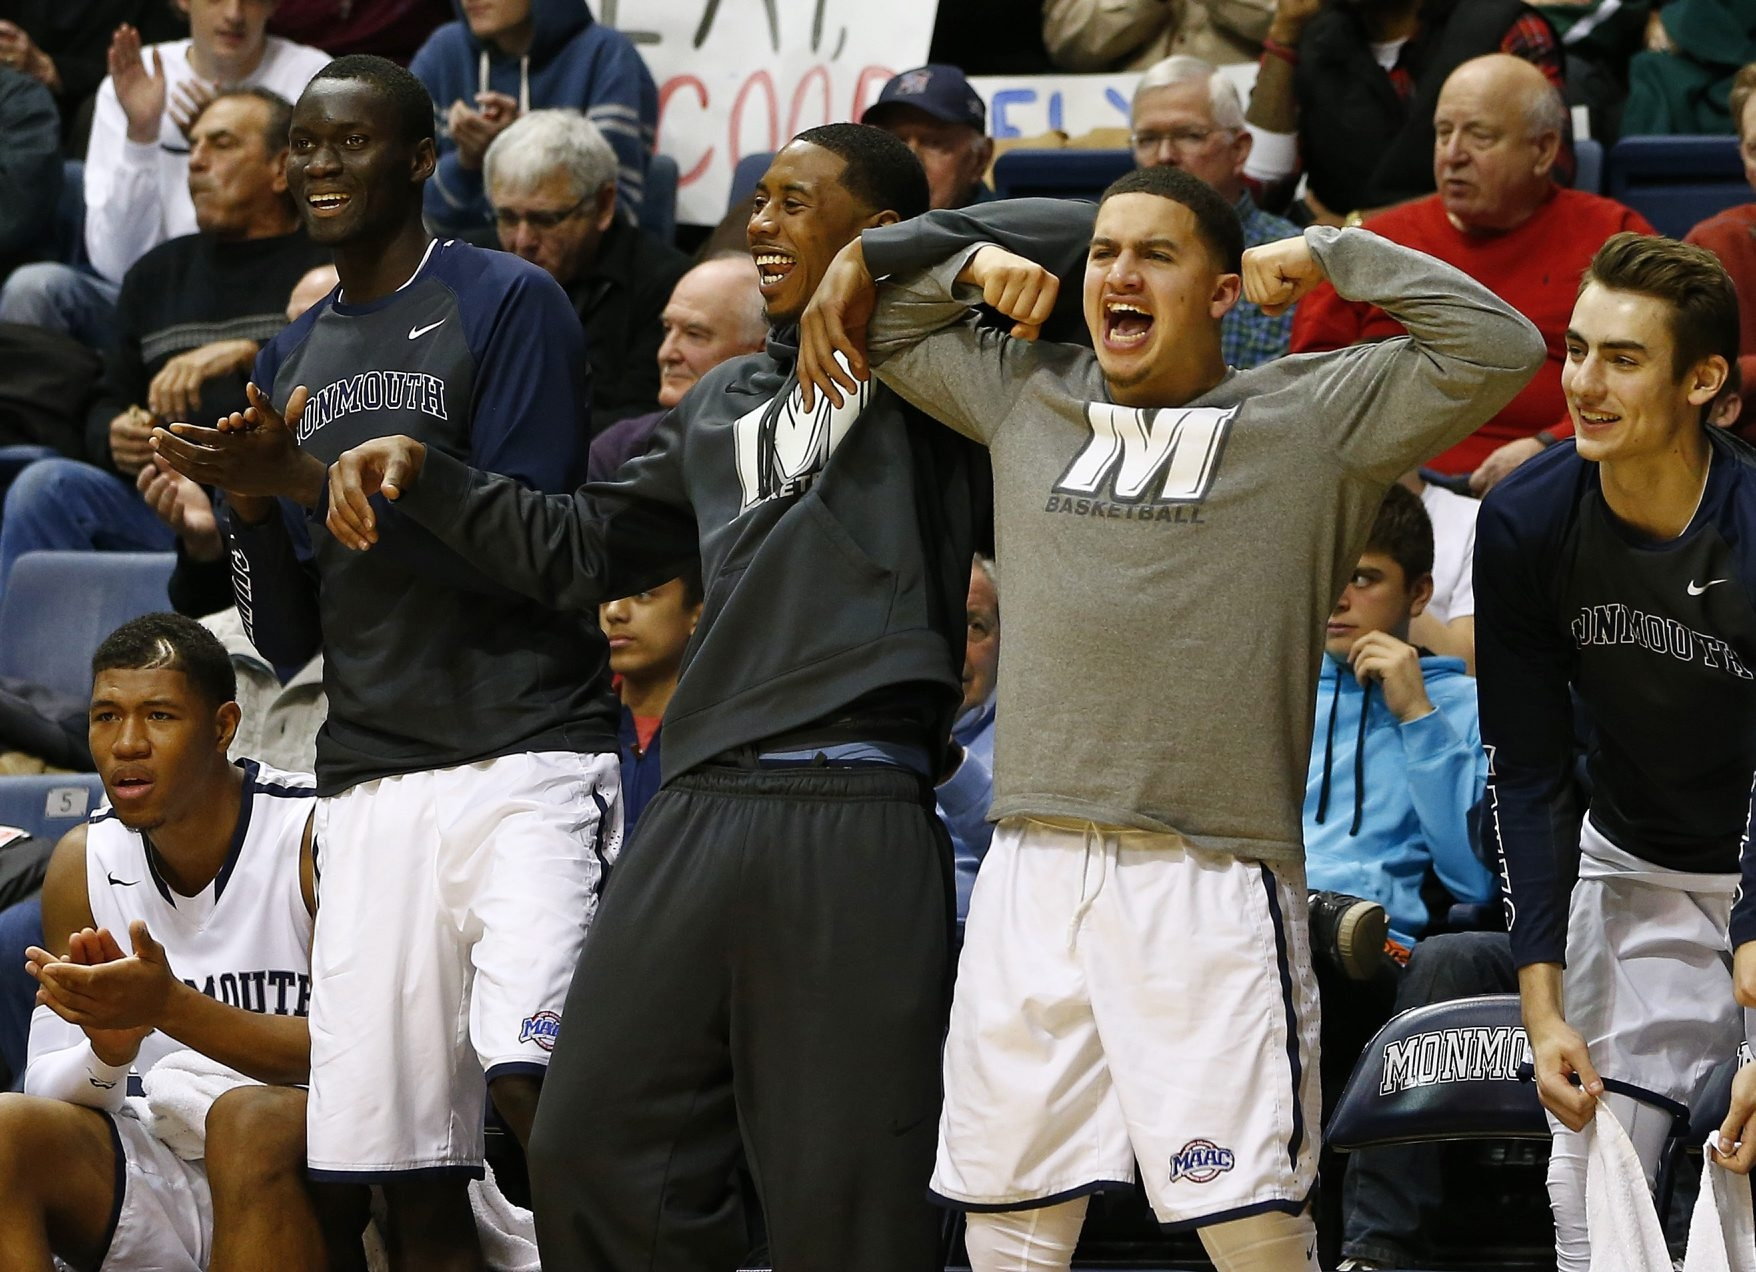 Despite losing in the MAAC championship game, Monmouth deserves to be included in the NCAA Tournament.